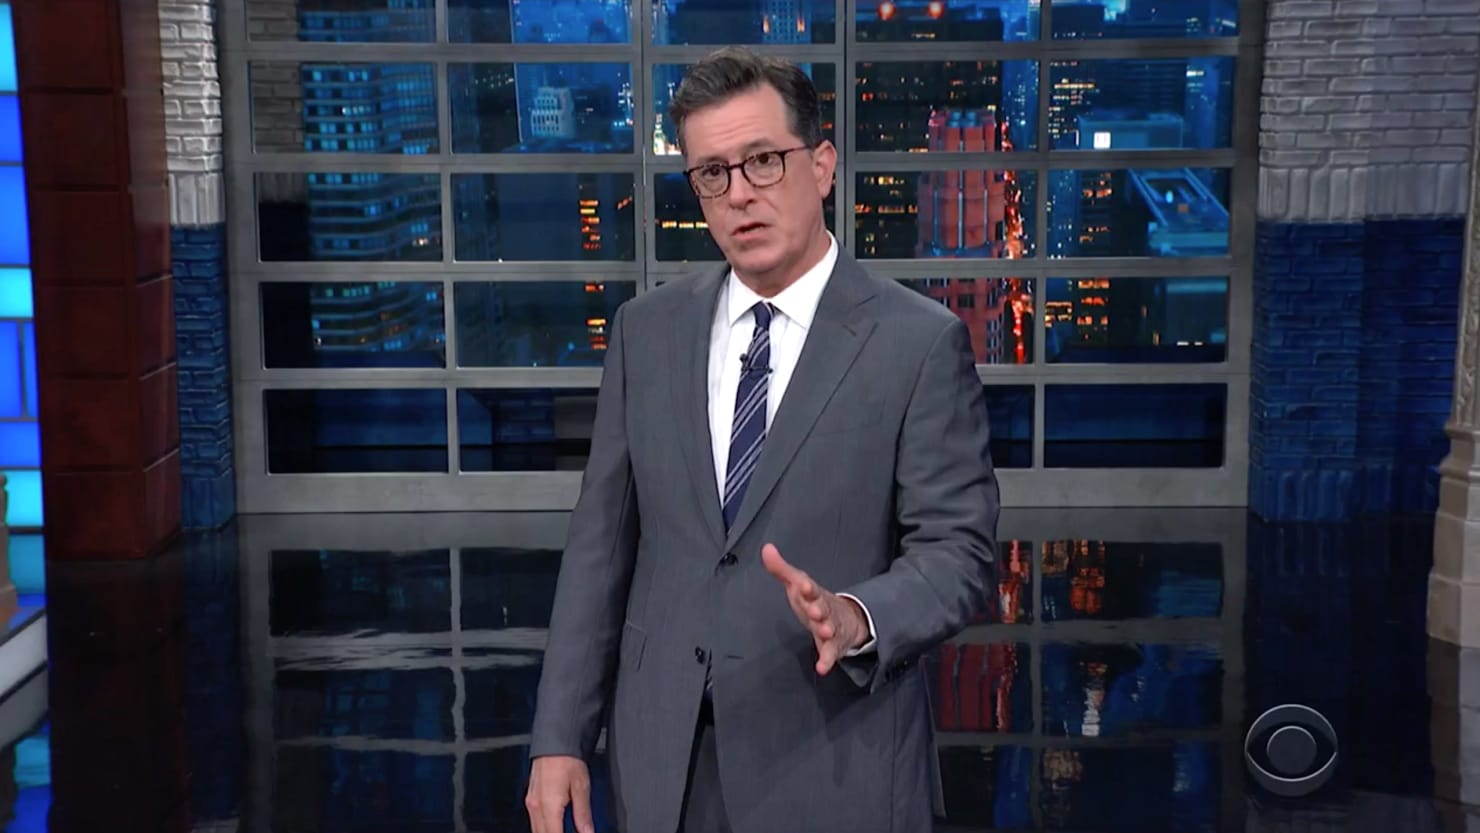 Stephen Colbert Sounds Off on E. Jean Carroll's Trump Rape Allegation: 'Specific, Credible and Terrible'